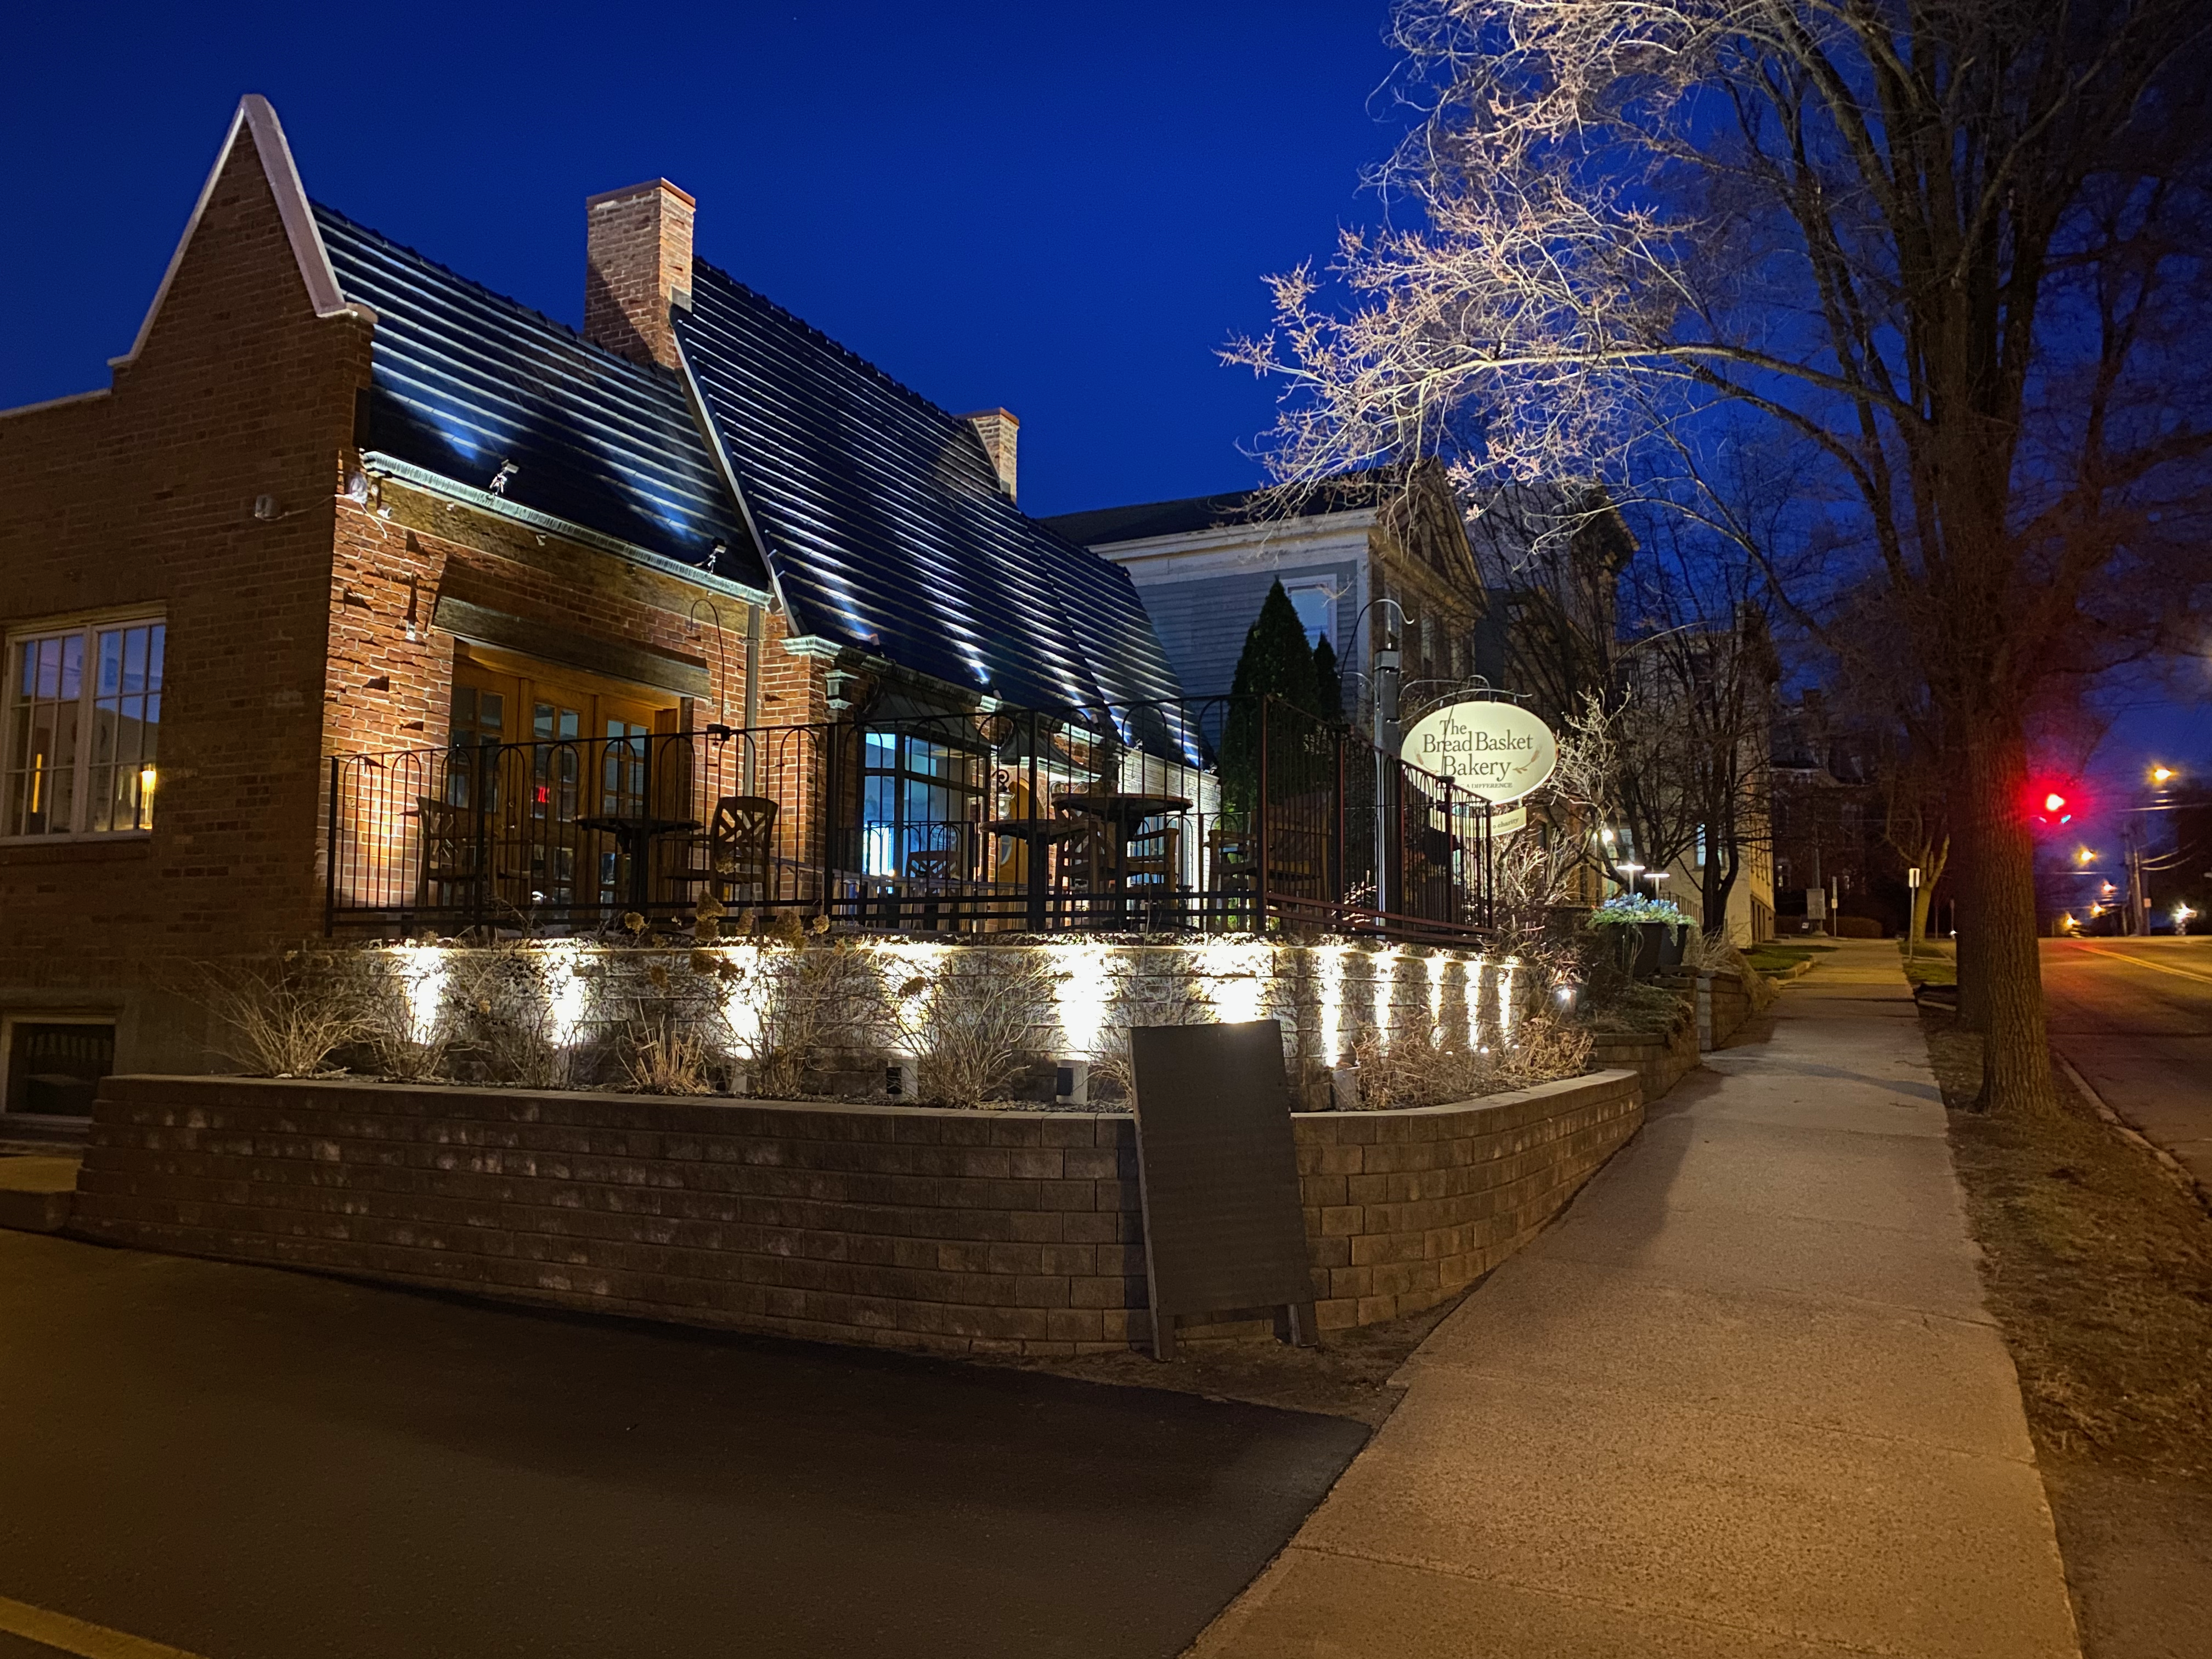 Local bakery with landscape lighting lighting up a rock wall and roof